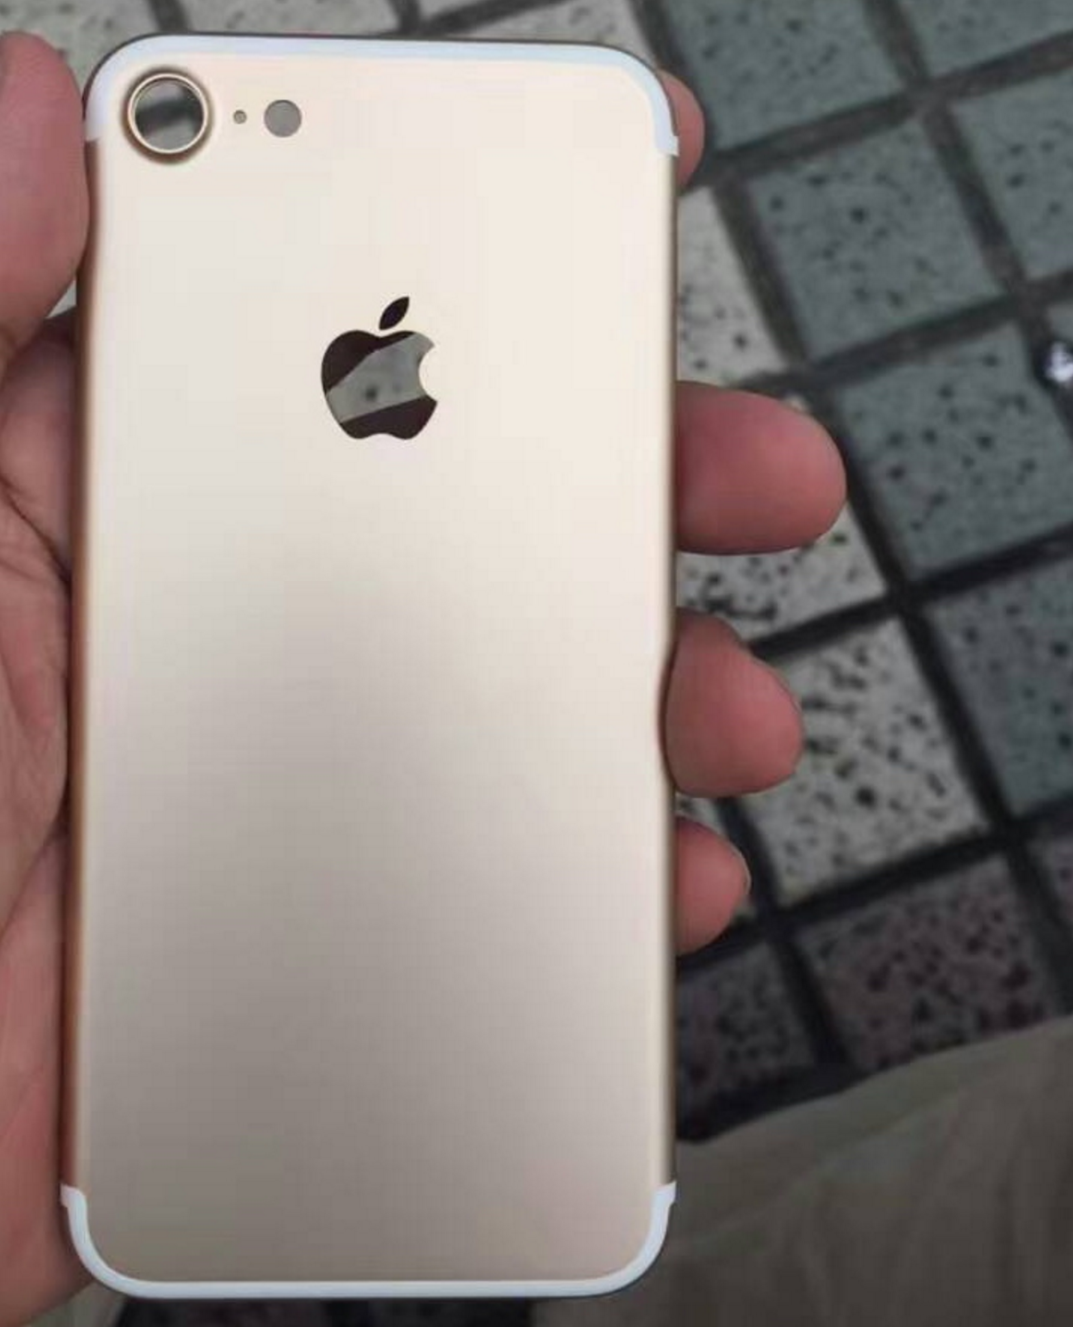 iPhone 7 Photos Leak And Confirm Everybodys Worst Fear Screenshot 2016 07 12 at 01.26.23